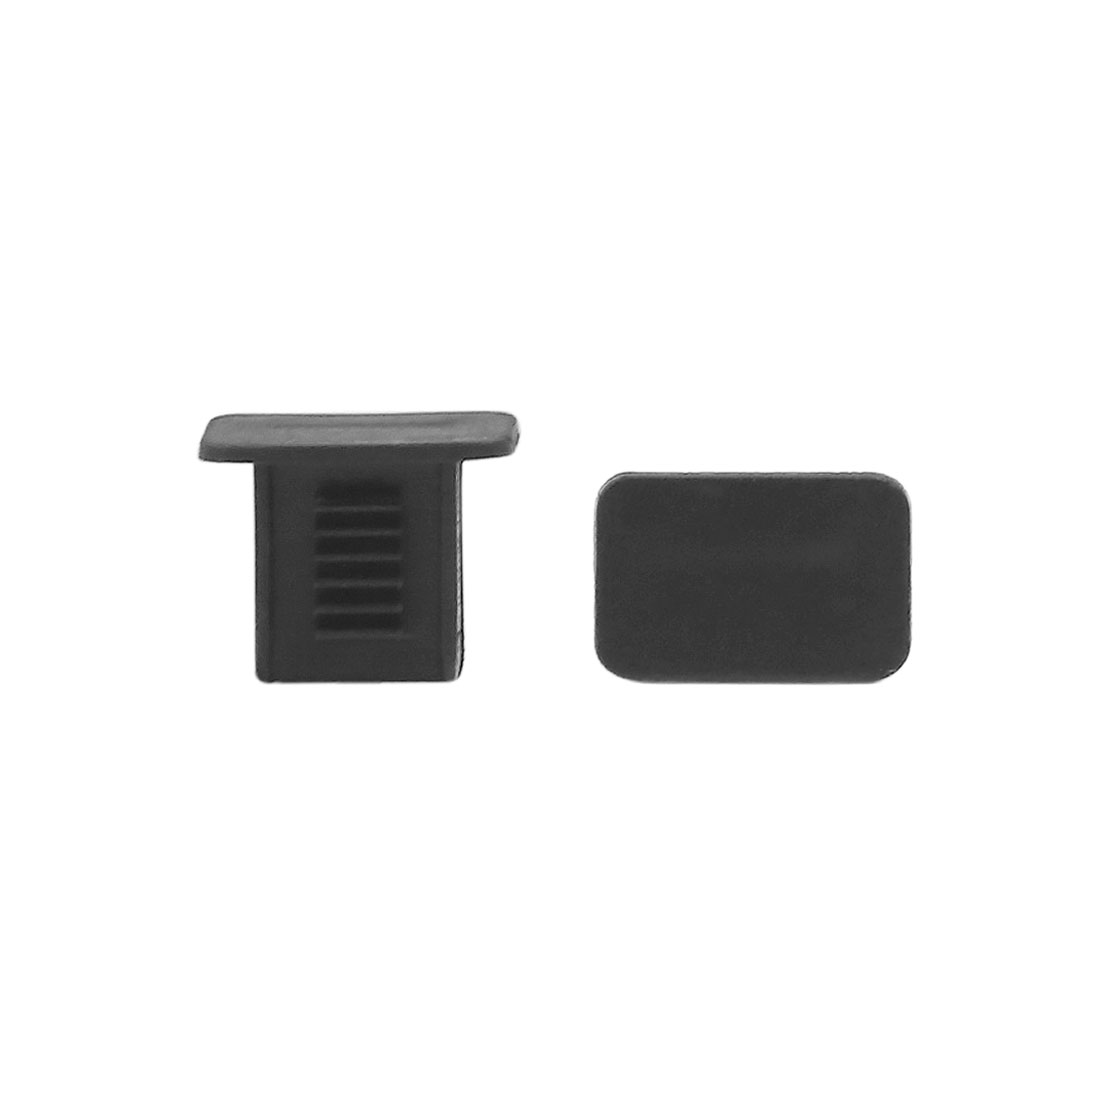 50Pcs Universal Plastic Rivet Door Trim Retainer Fastener Clips Black 7 x 10mm